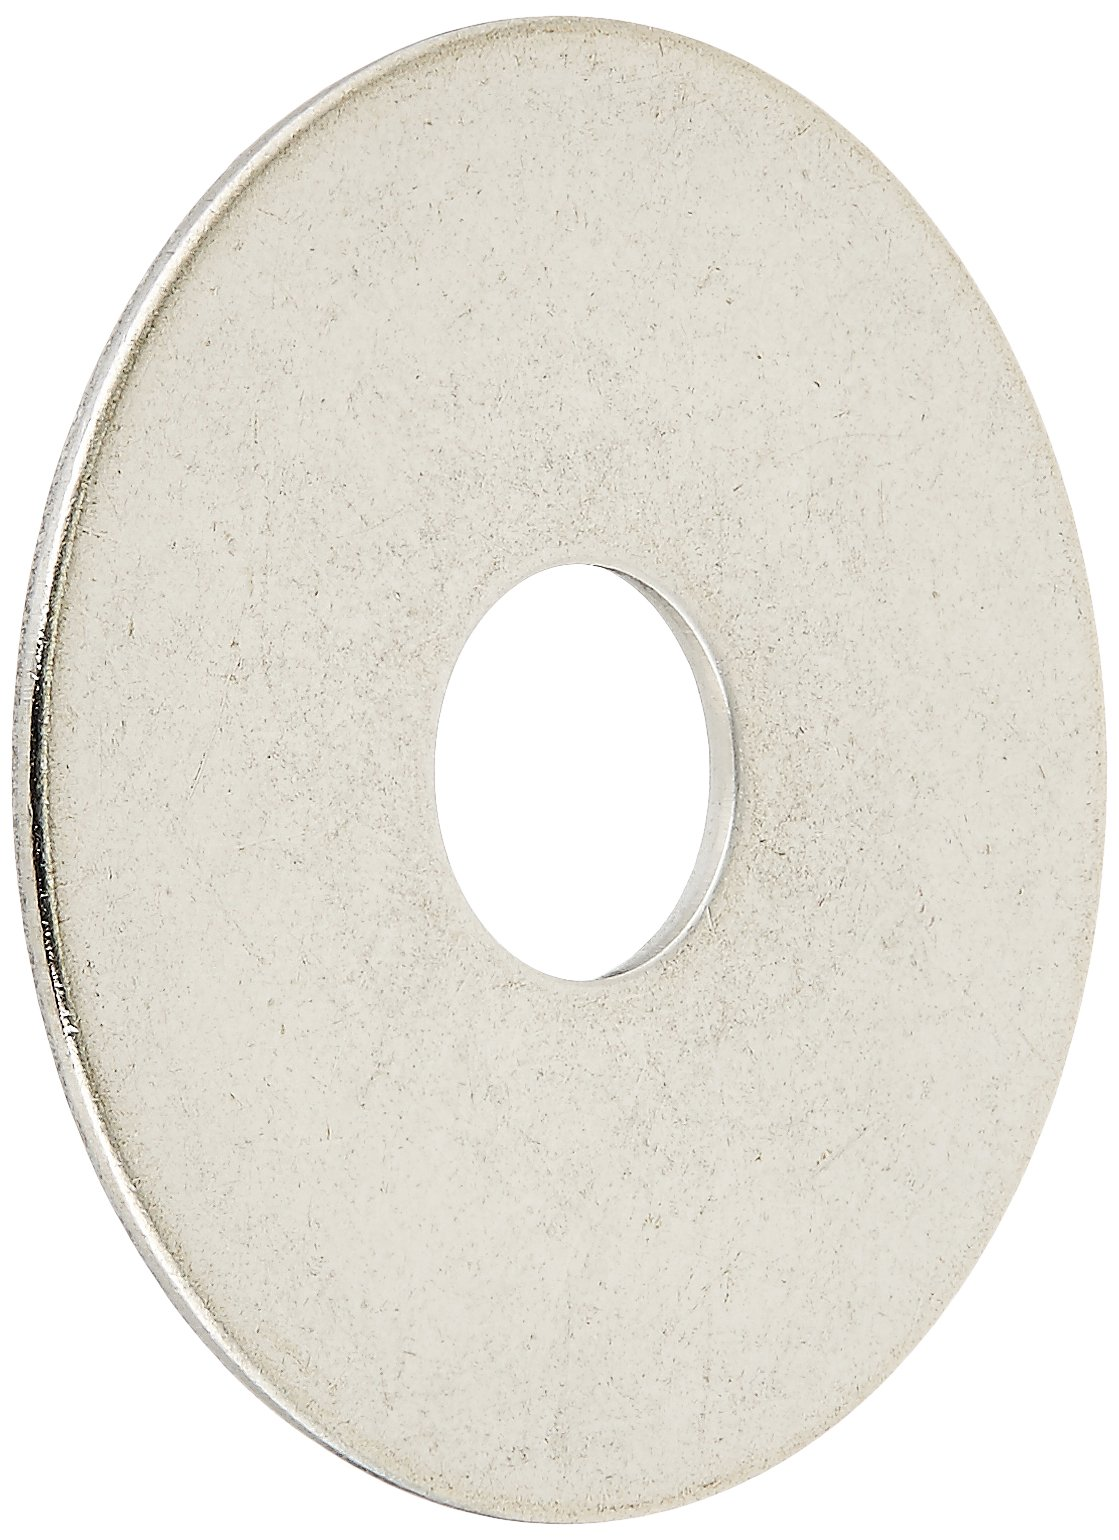 The Hillman Group 830626 Stainless Steel 3/8 x 1-1/2-Inch Fender Washer, 100-Pack